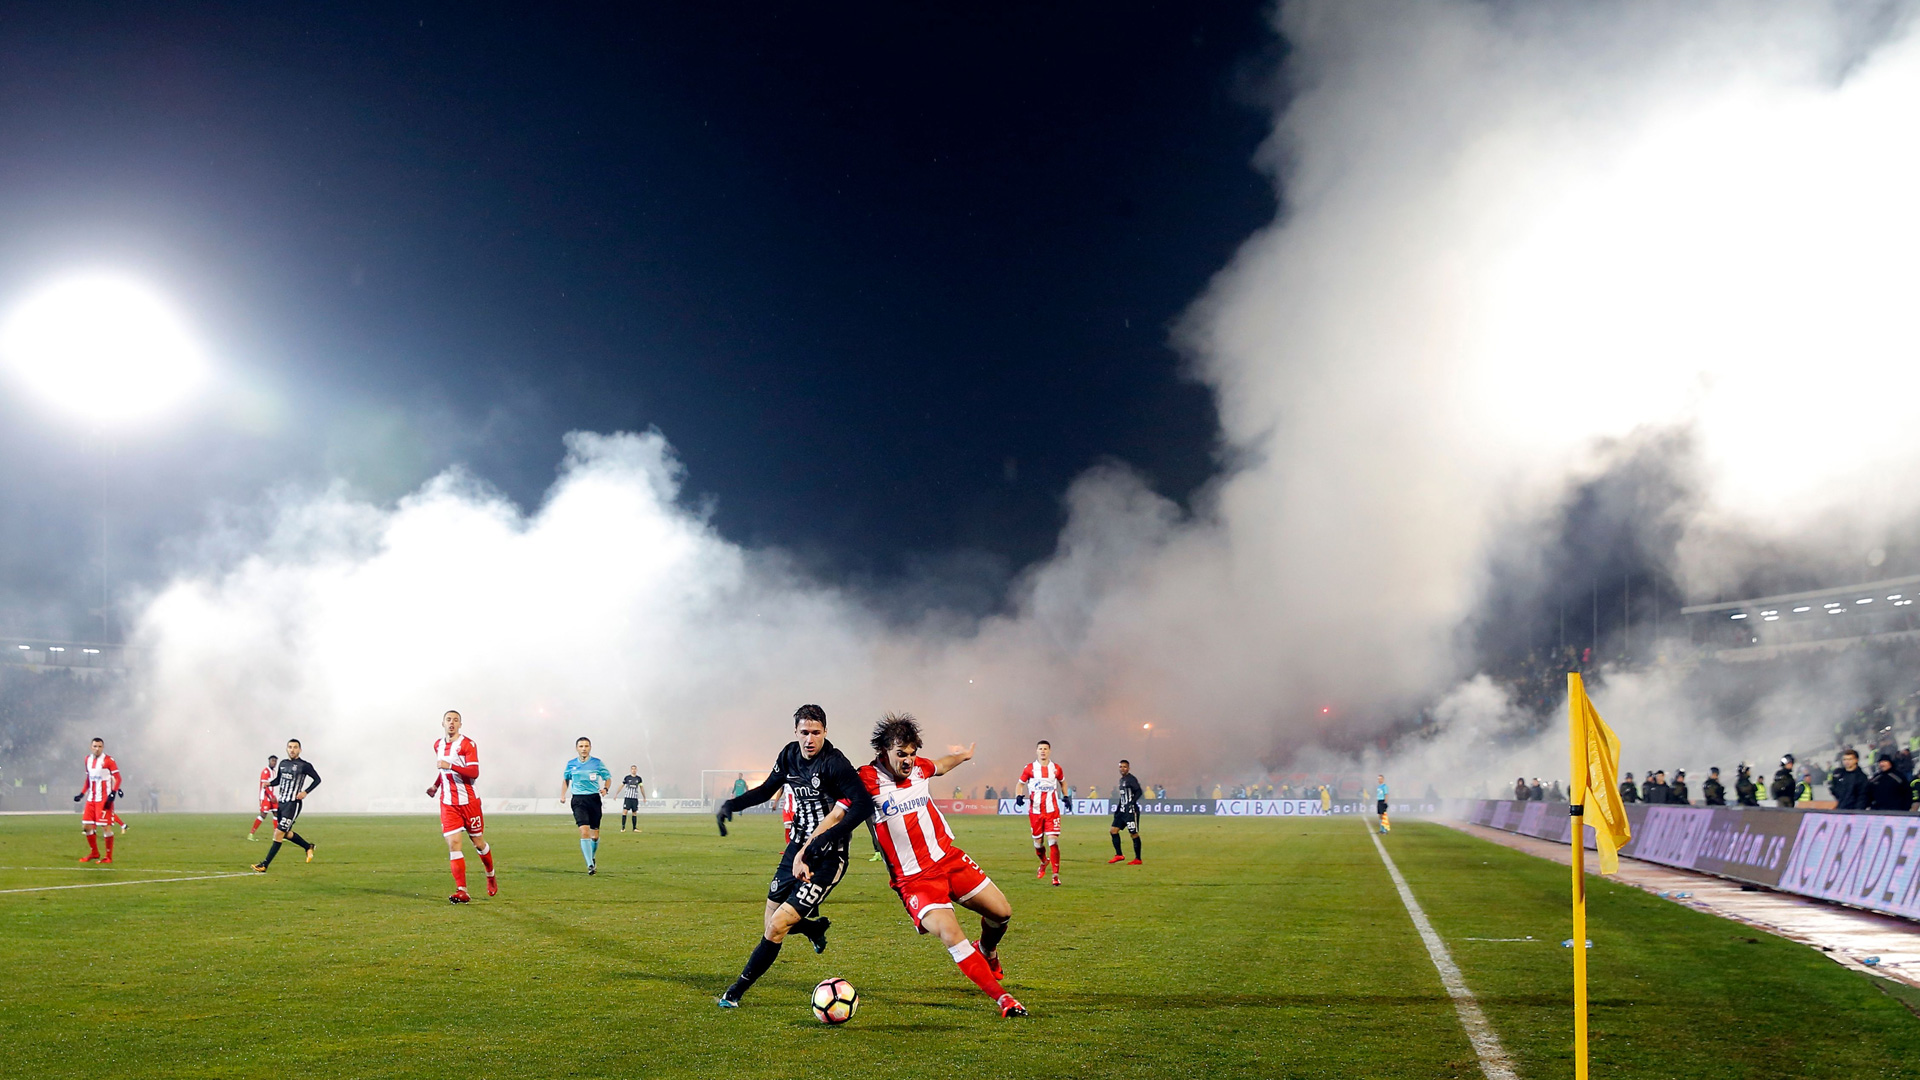 Roter Stern Partizan